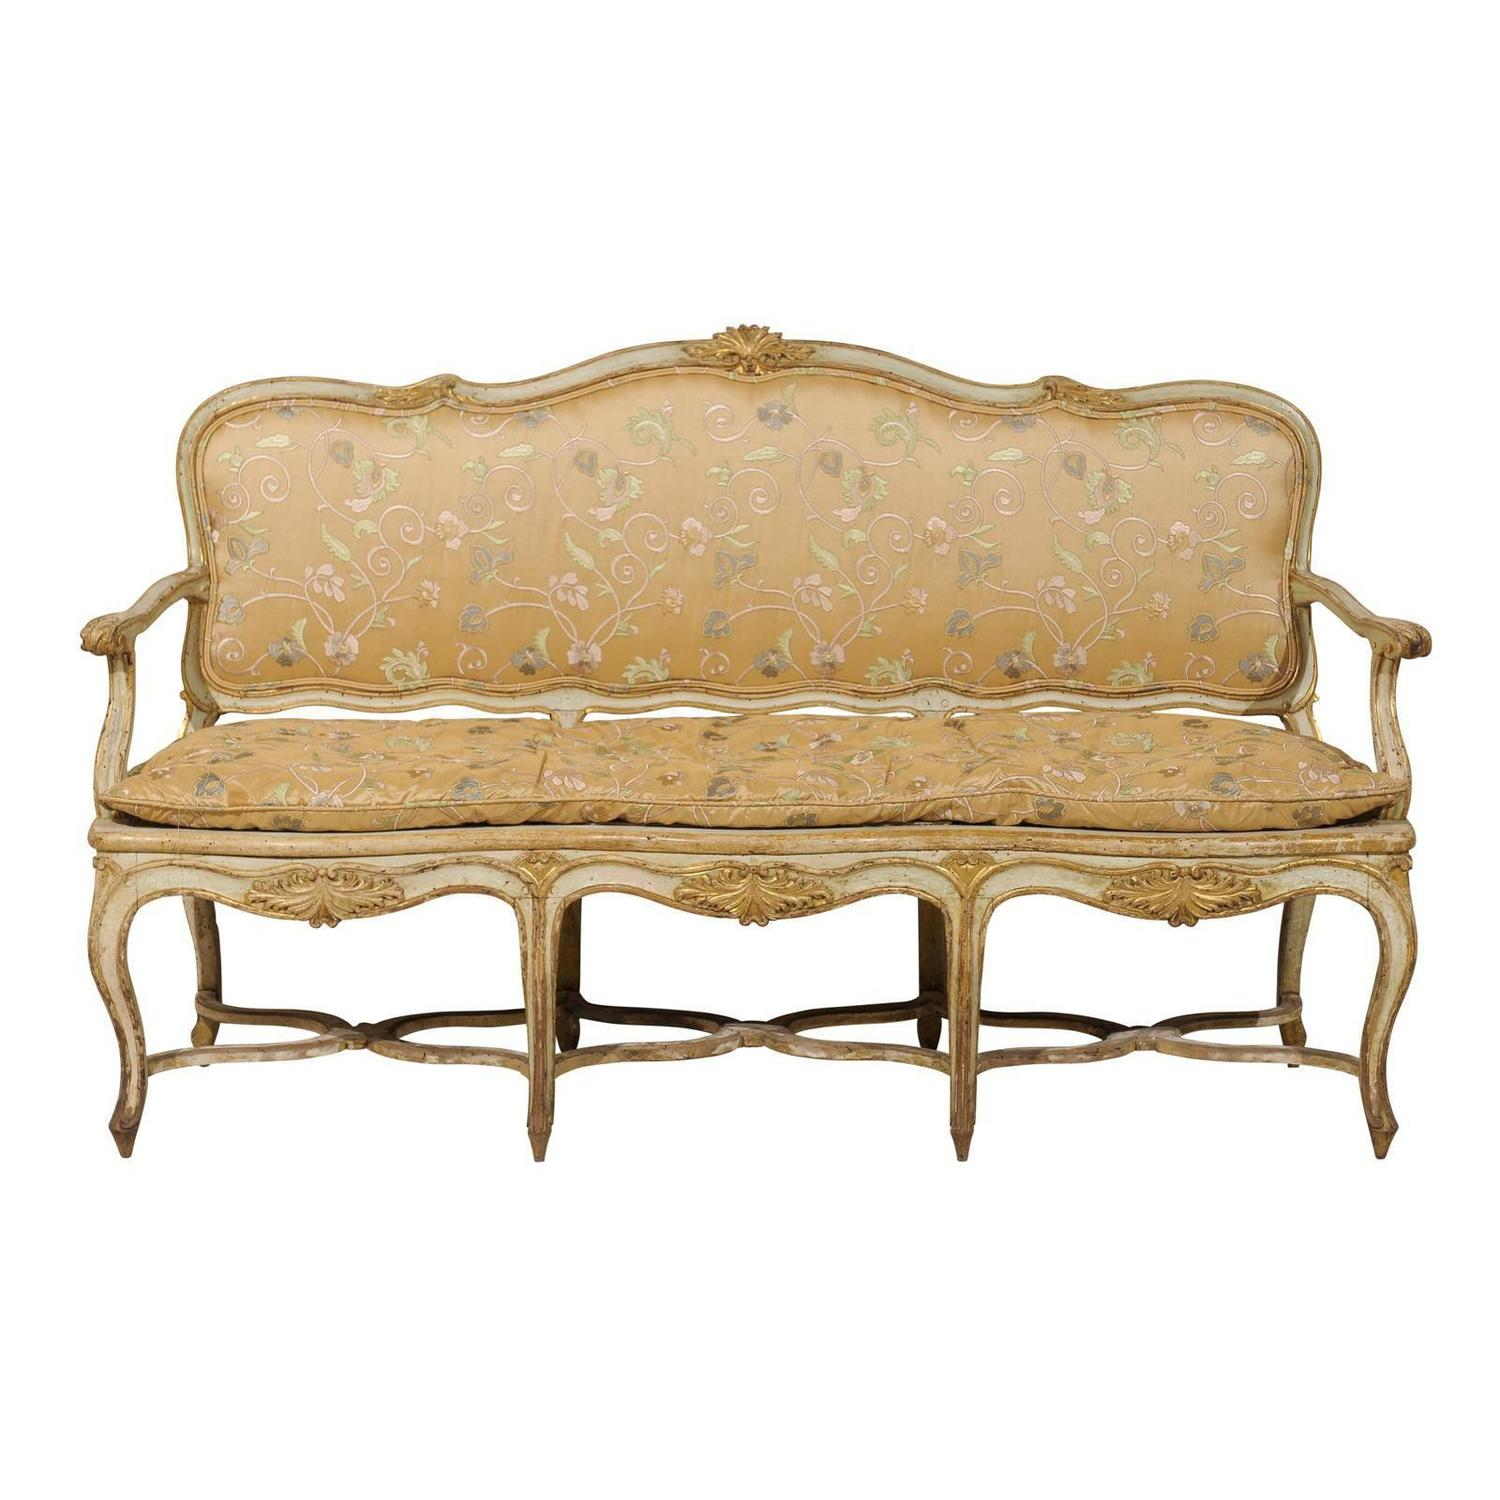 Canape Sofa French 18th Century Sofa Canapé With Original Paint At